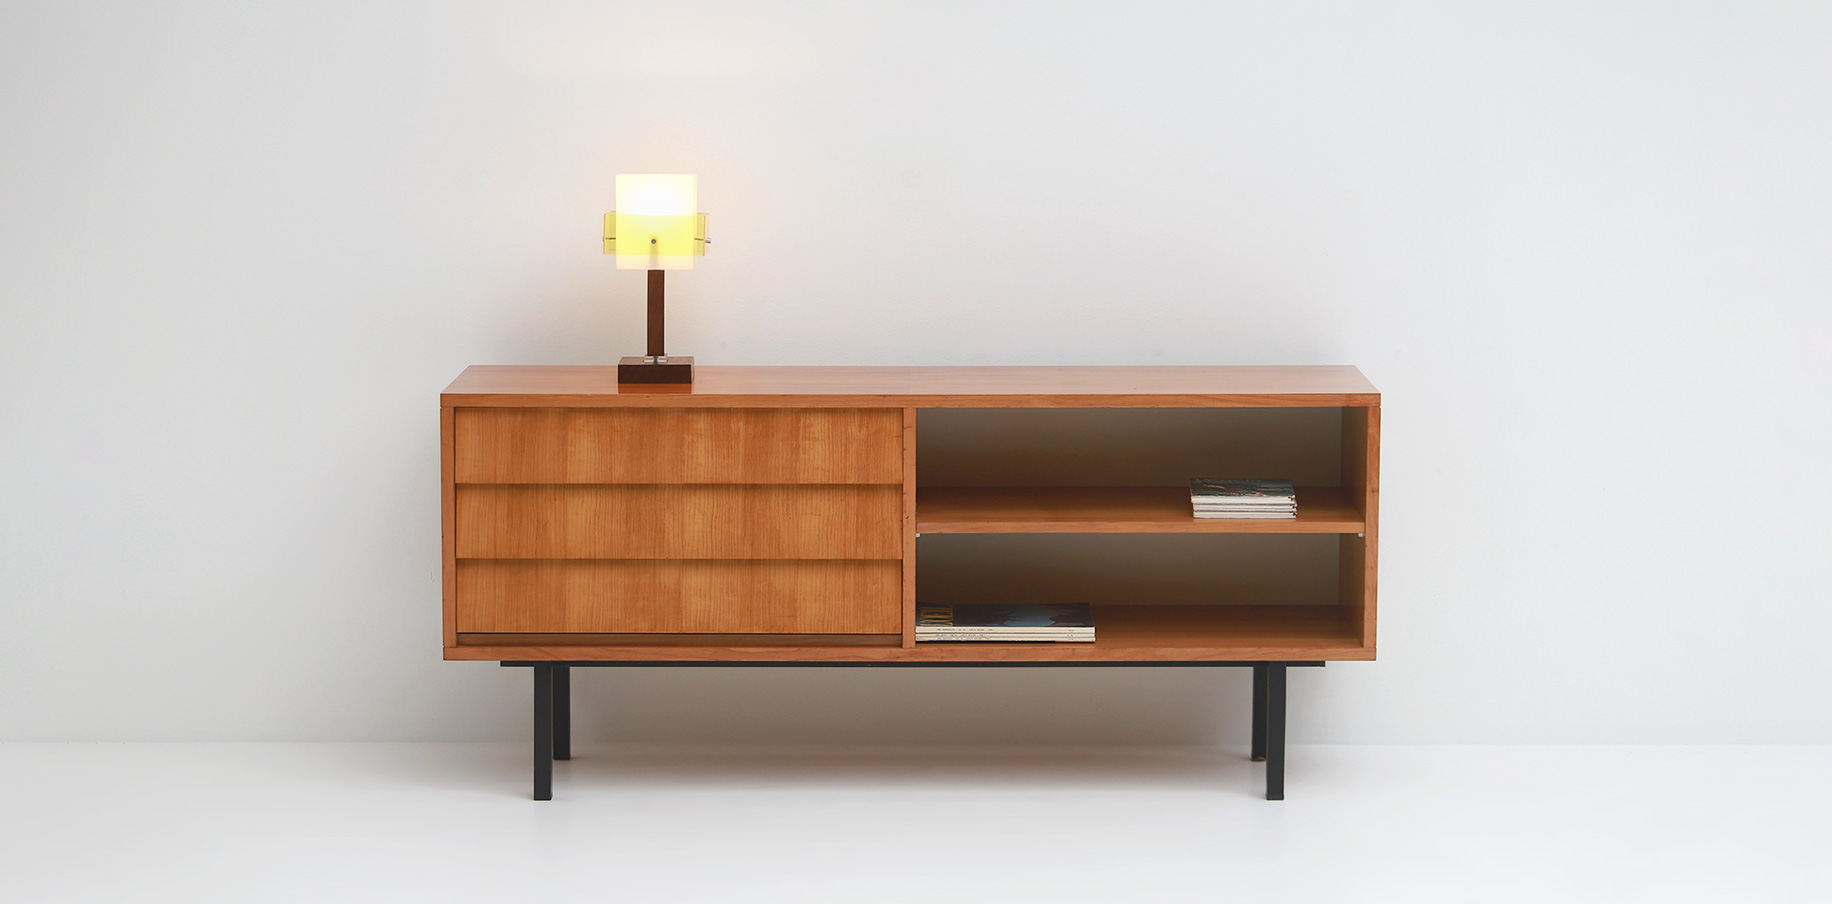 City furniture highlight 2